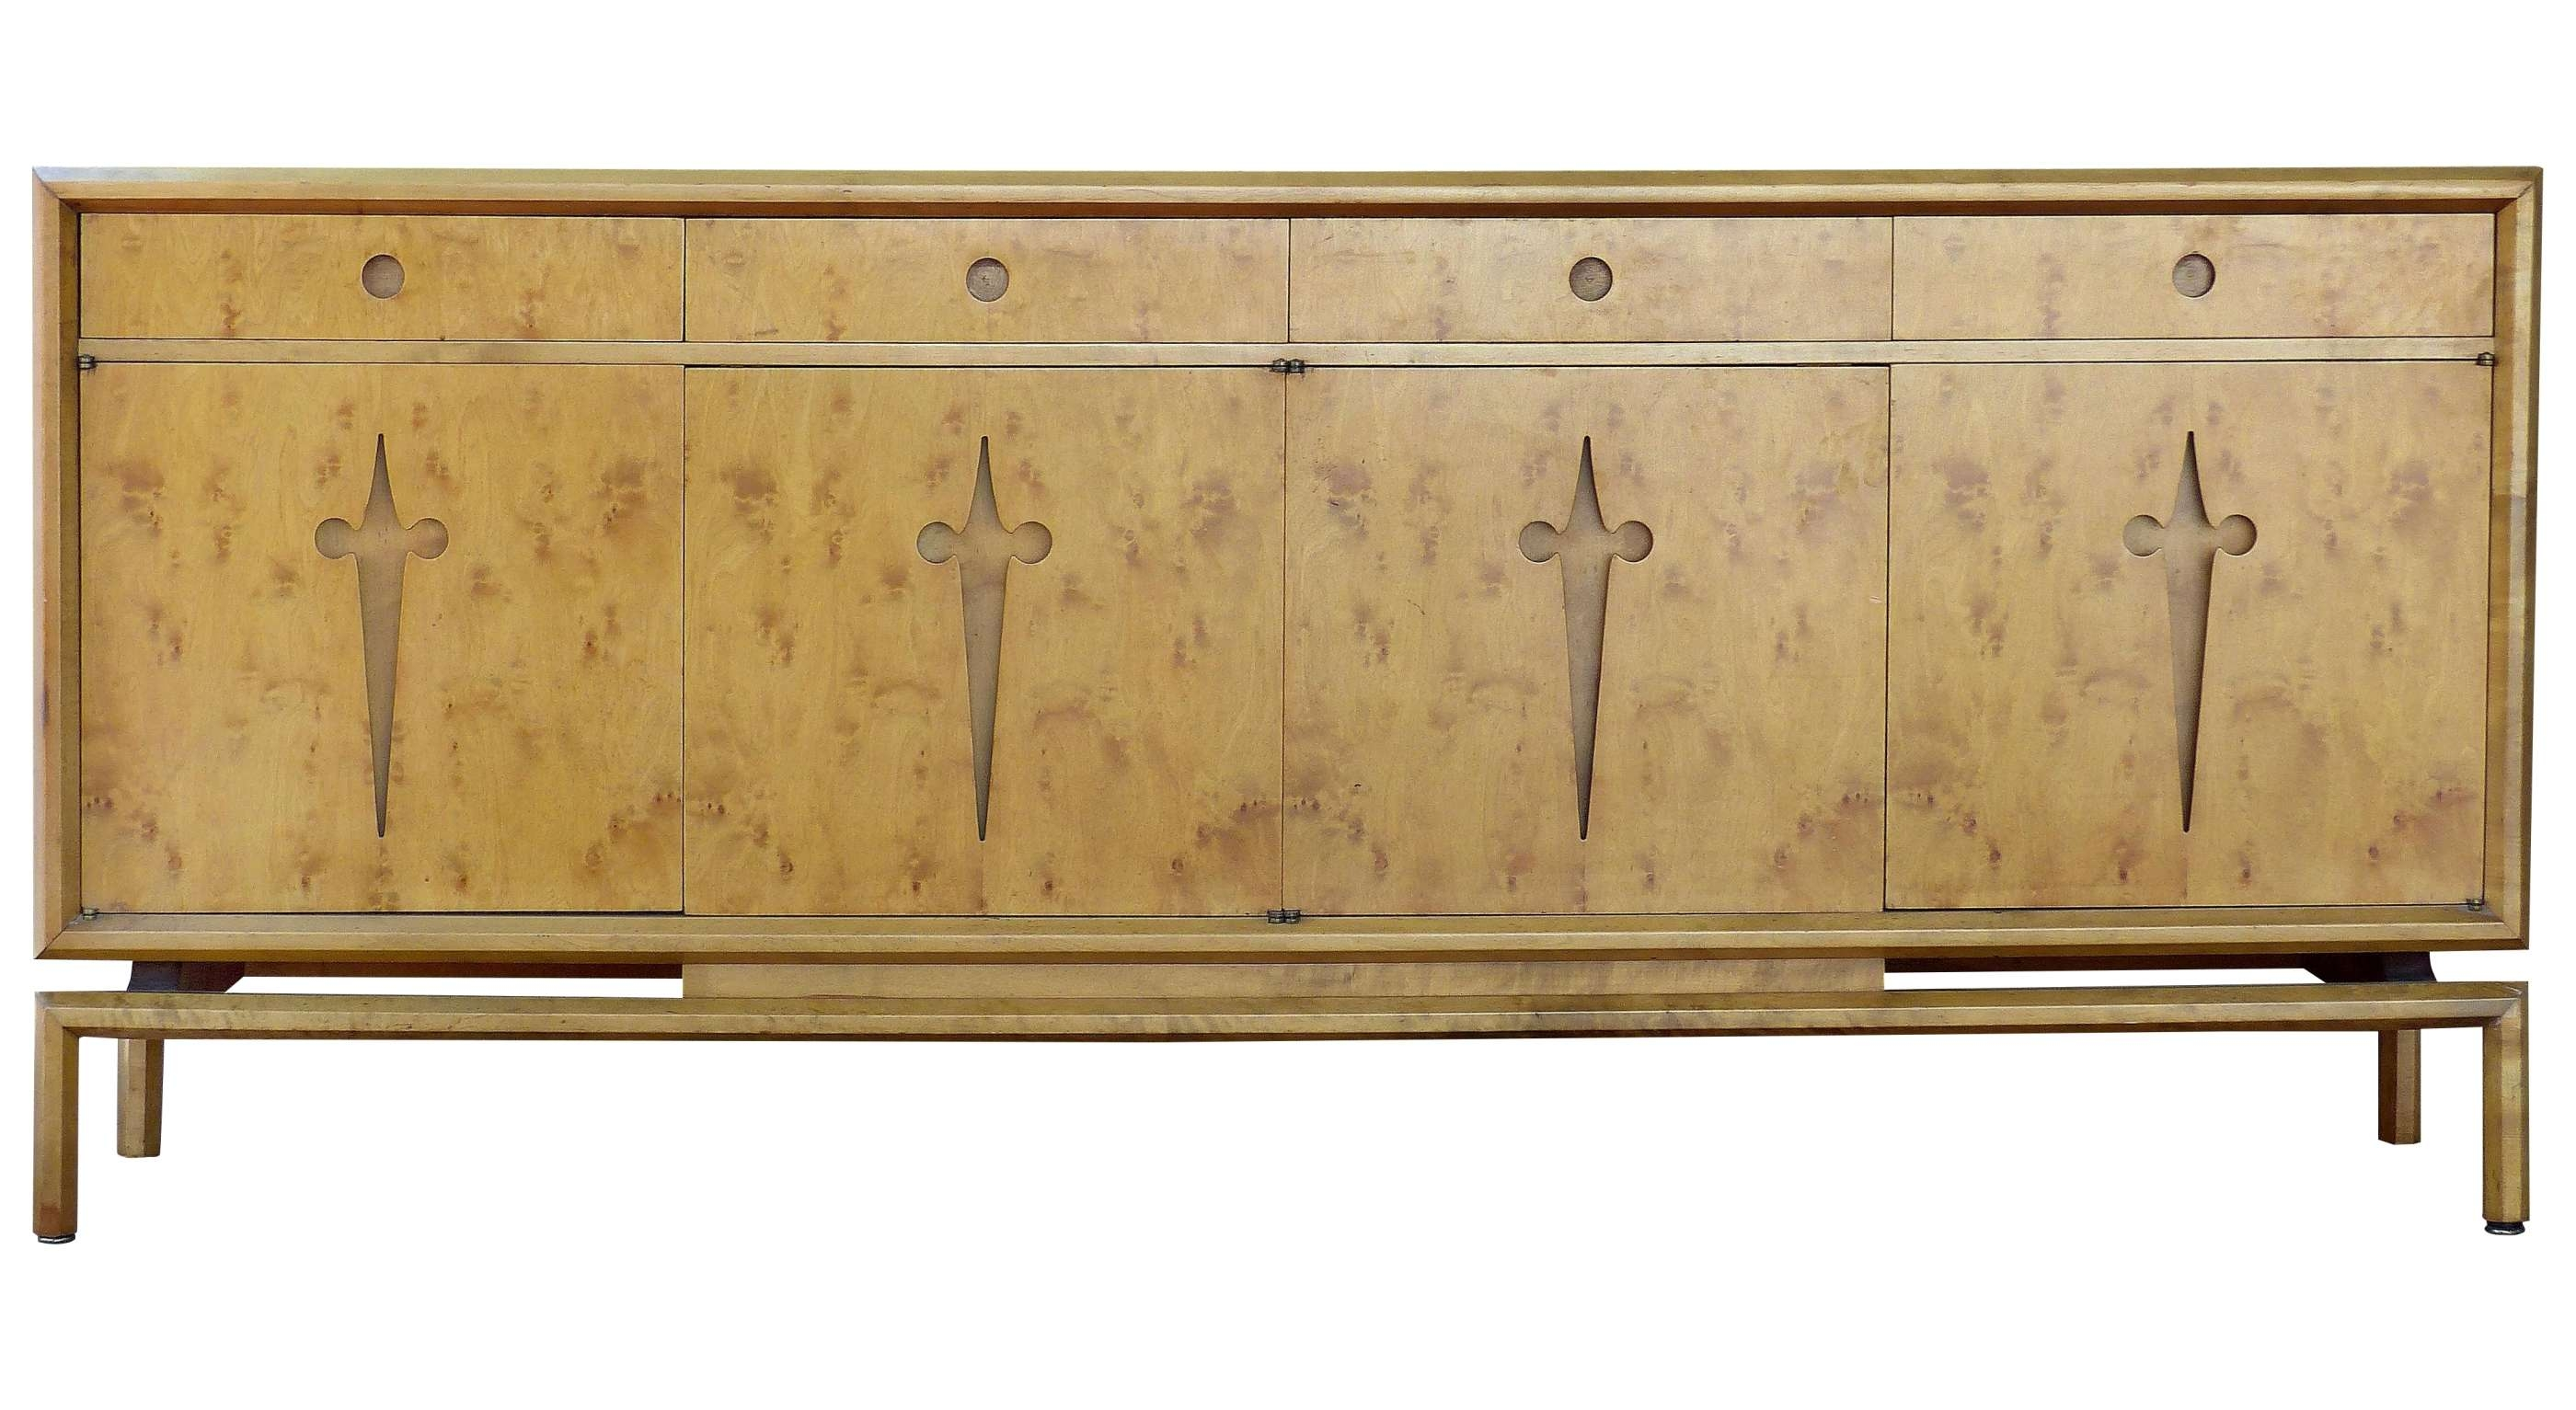 1950S Swedish Edmond J. Spence Maple Sideboard | Modernism With Regard To Maple Sideboards (Gallery 18 of 20)